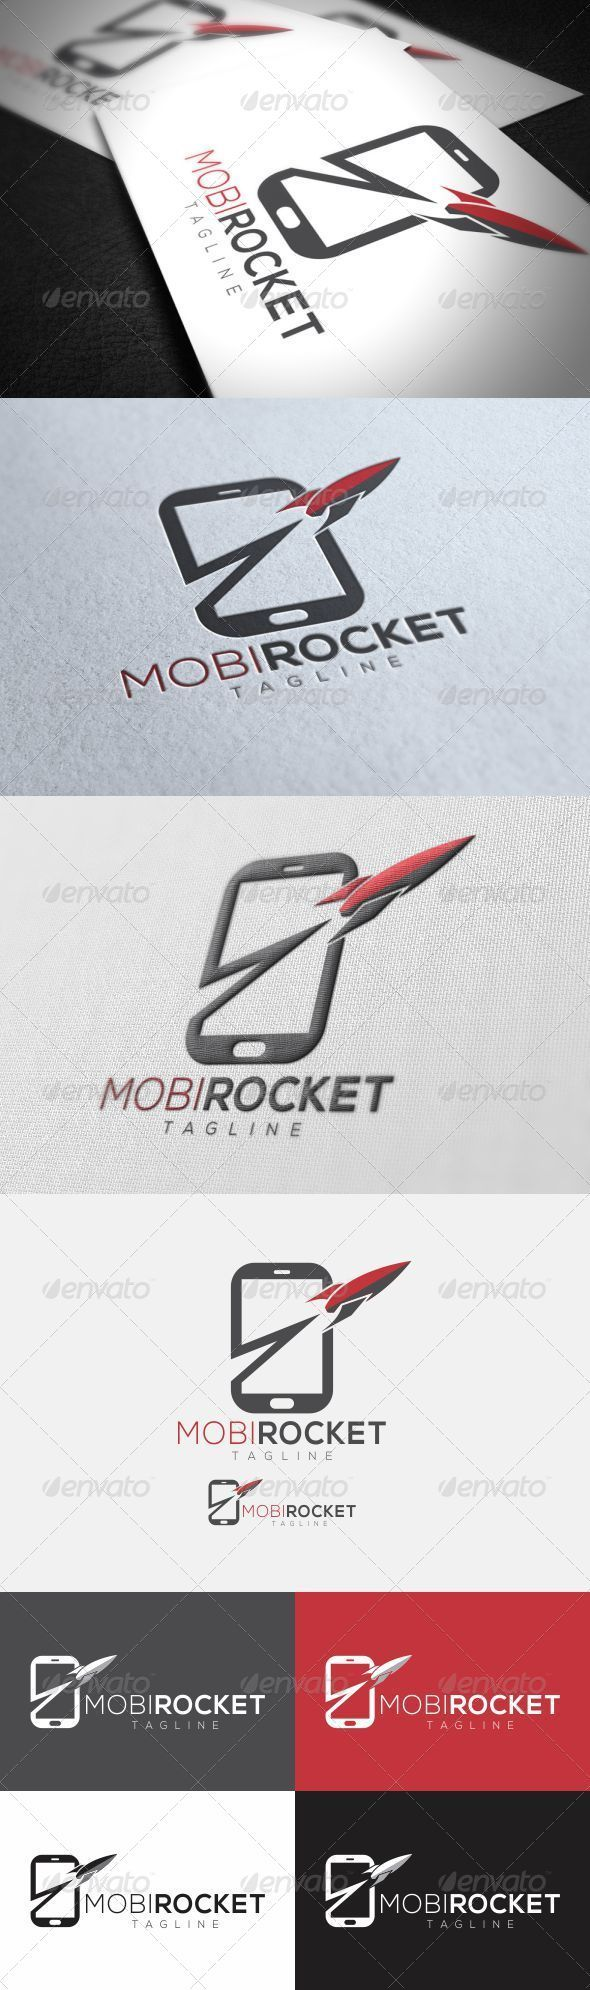 Below are two different file formats of the superman logo in a beveled - Mobile Rocket Logo Graphicriver